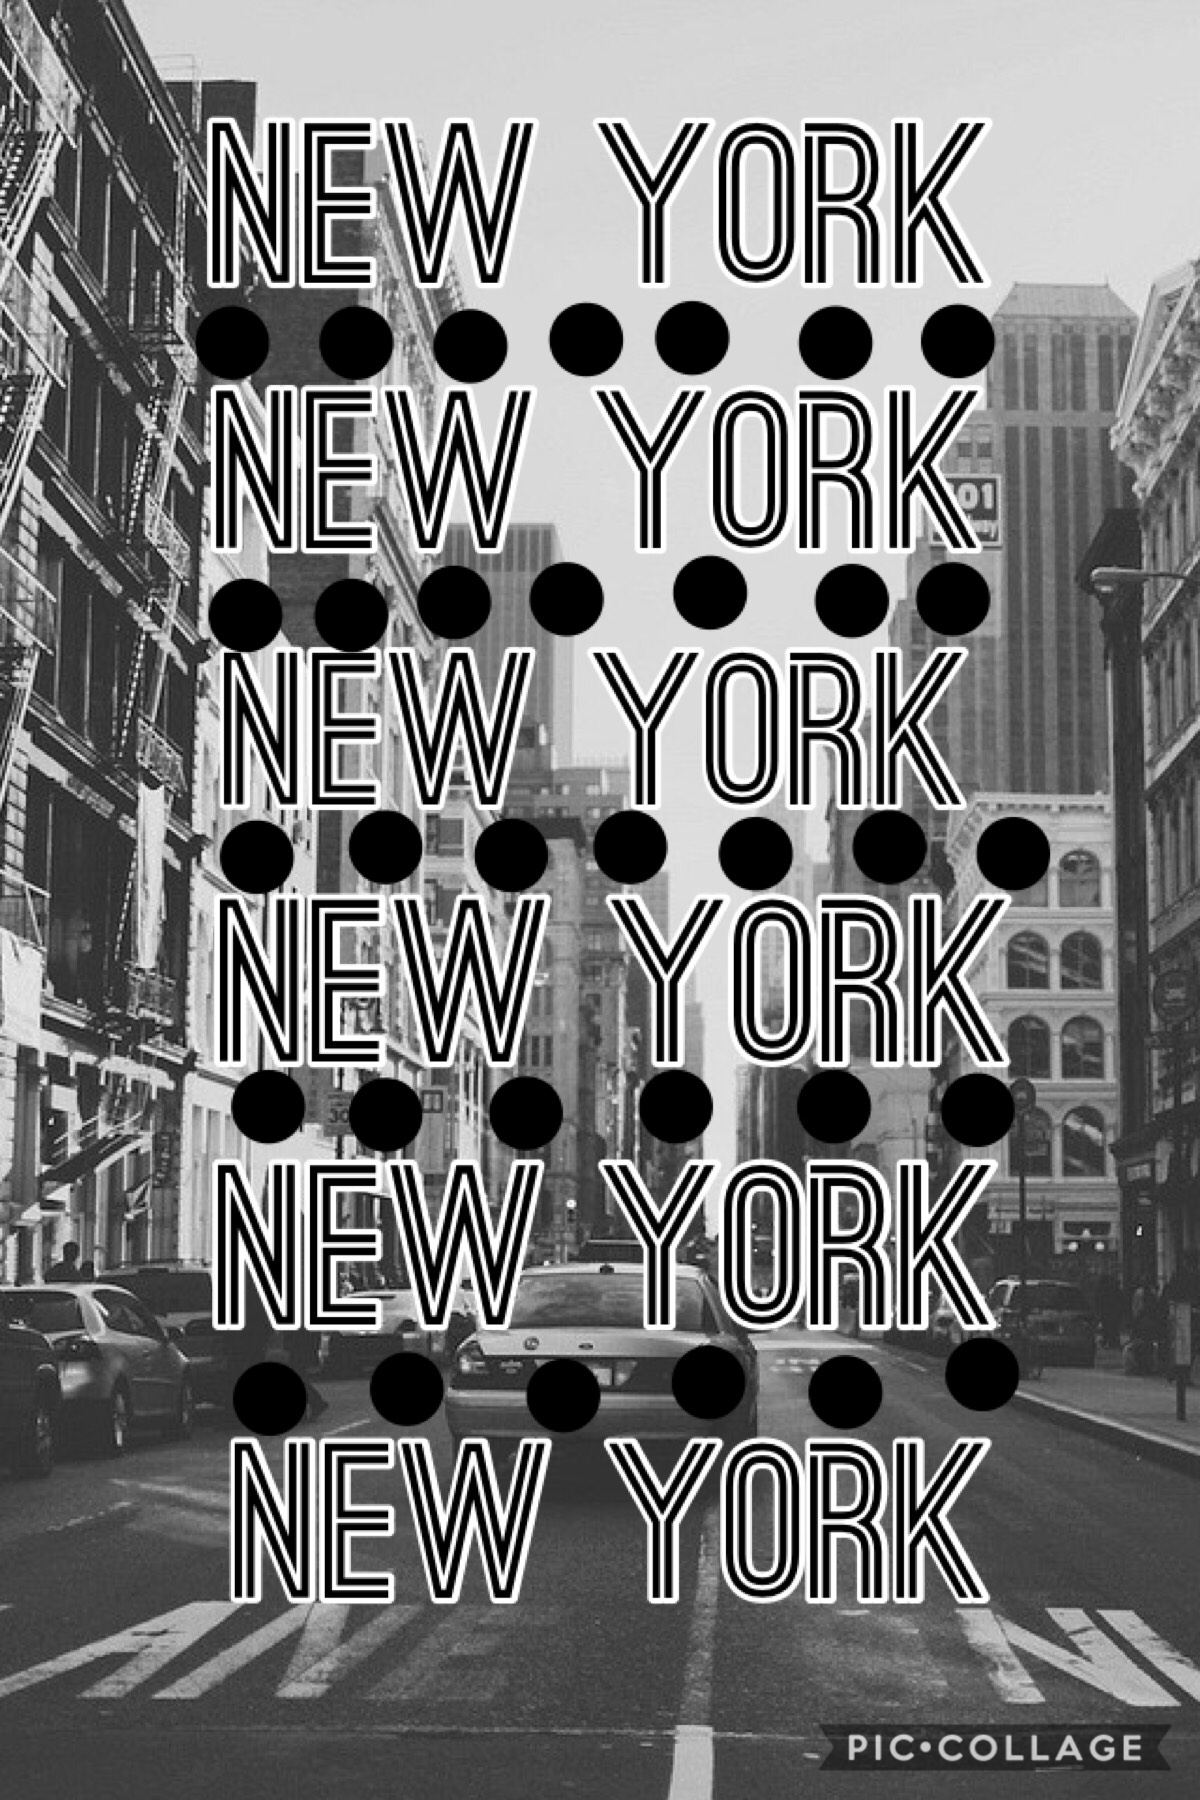 Hey guys! Hope everyone is doing good! I am actually in New York right now and thought I should do a collage about New York! So here it is! Hope y'all like it!❤️